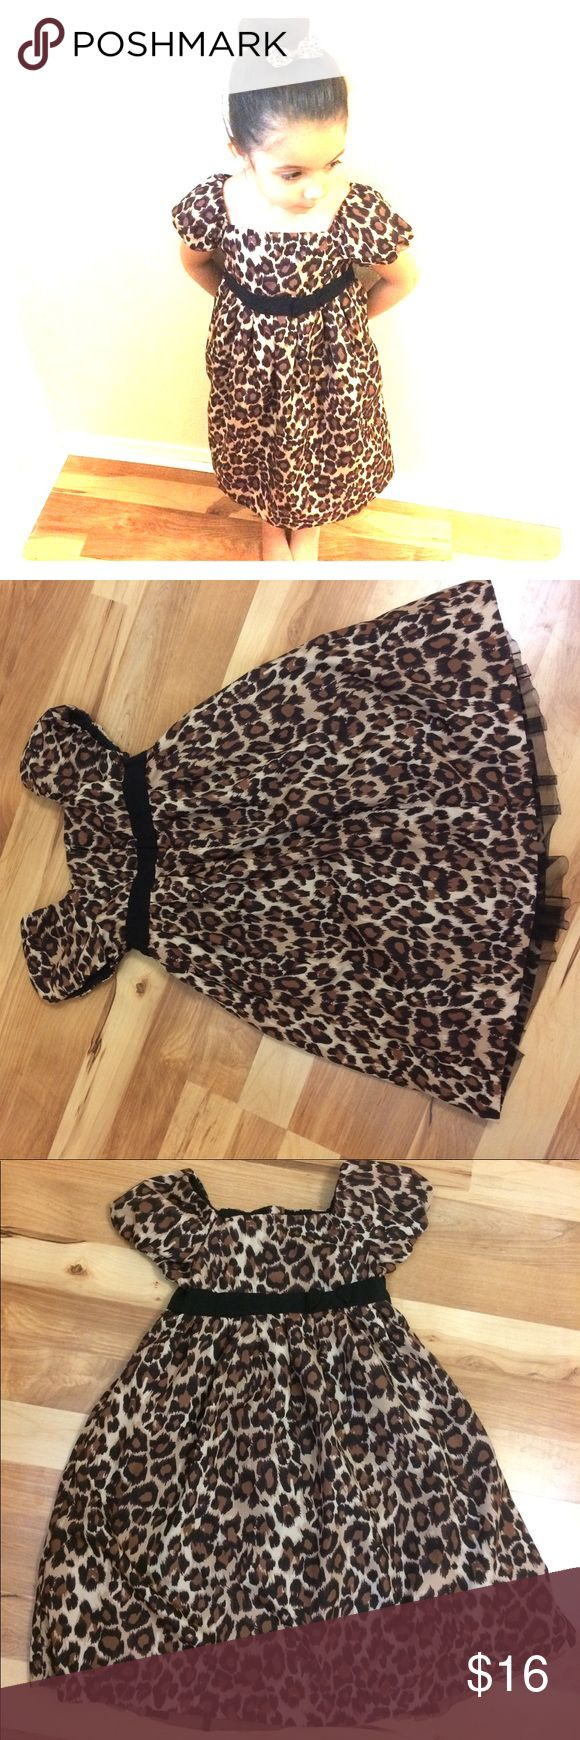 BabyGap leopard / cheetah print dress BabyGap leopard / cheetah print dress. Size 5 years toddler. Has a zipper back with a jewel button. Has a small amount of tulle on the under lining skirt. No stains or rips. GAP Dresses